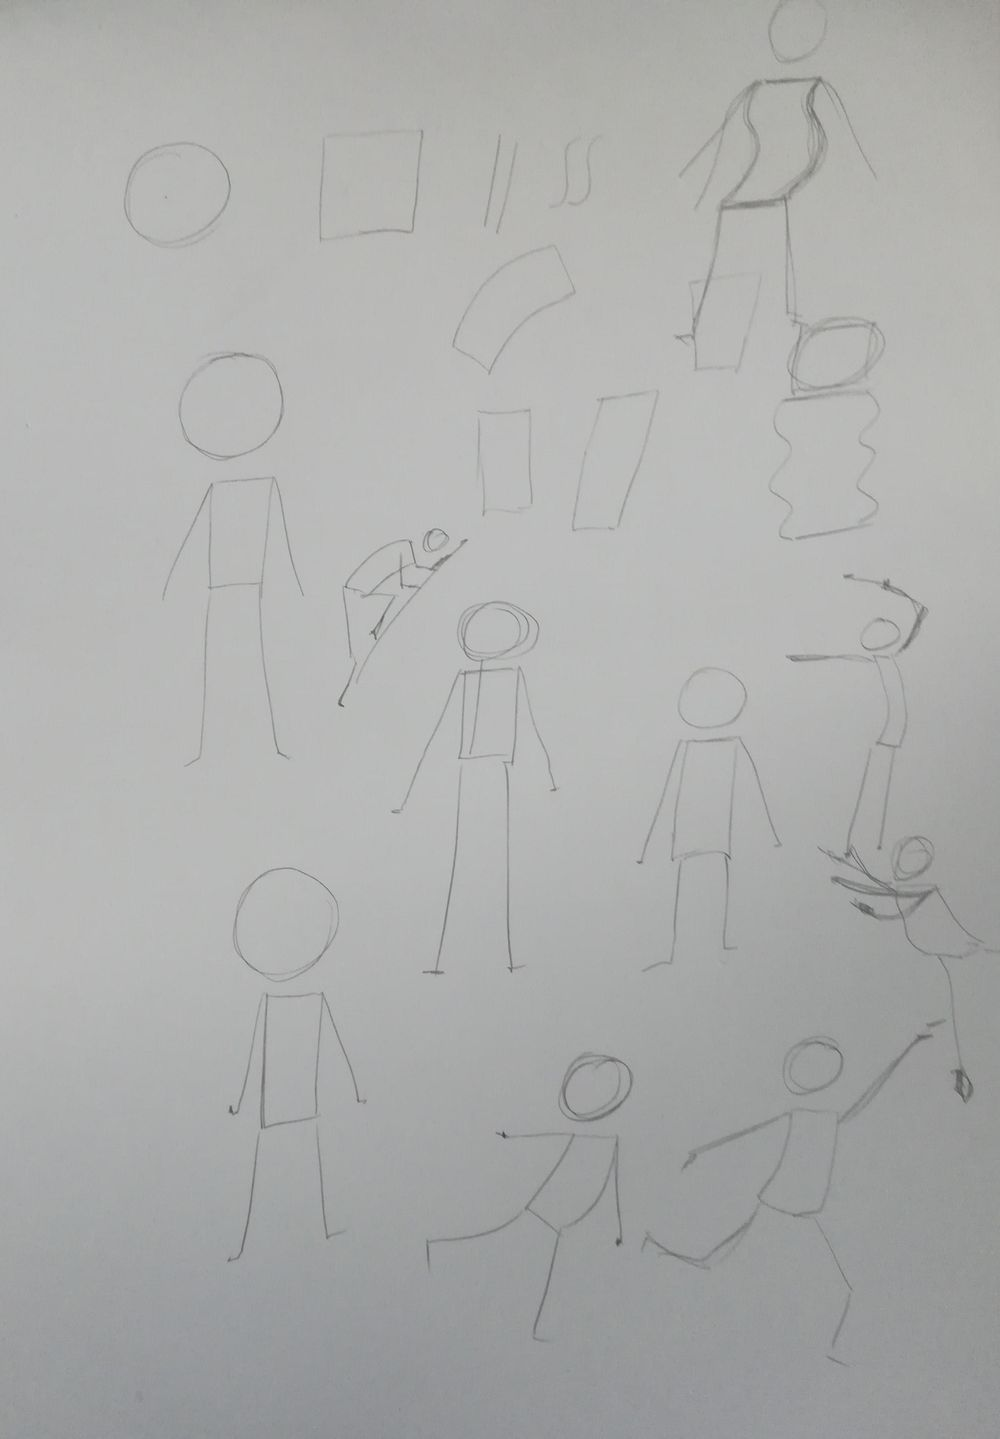 Doodle People - image 2 - student project